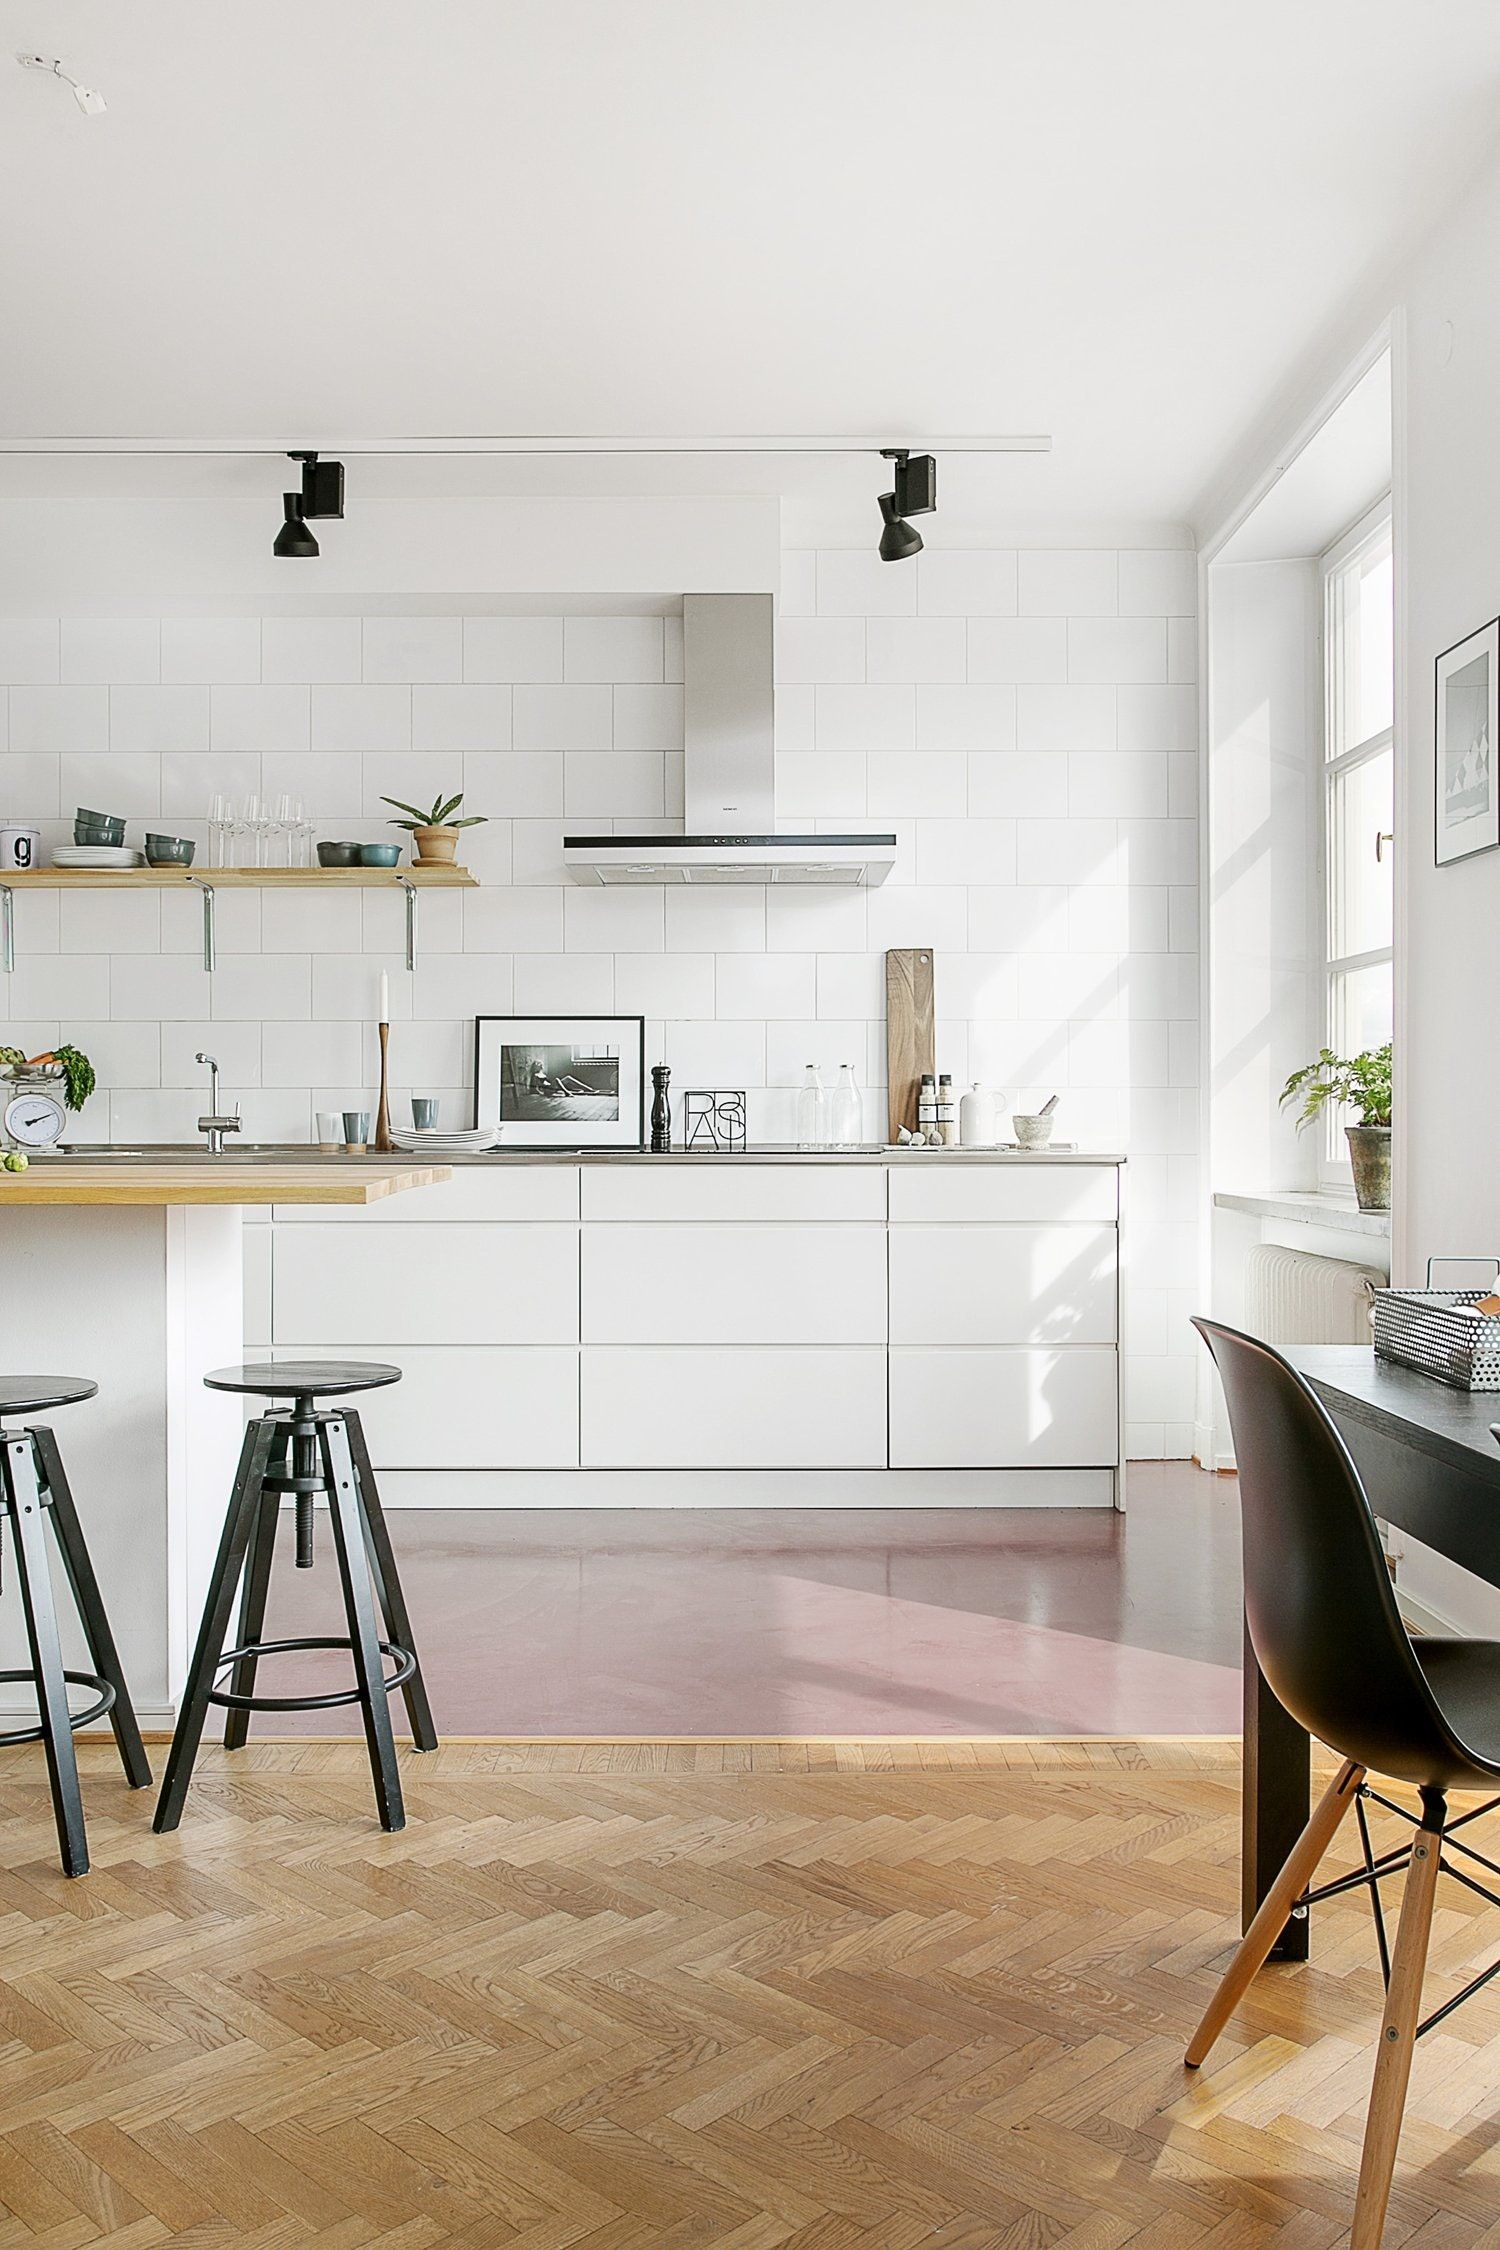 Details Design Ideas To Borrow From Modern Kitchens No Matter What S Your Style Kitchen Flooring Kitchen Interior Interior Design Kitchen